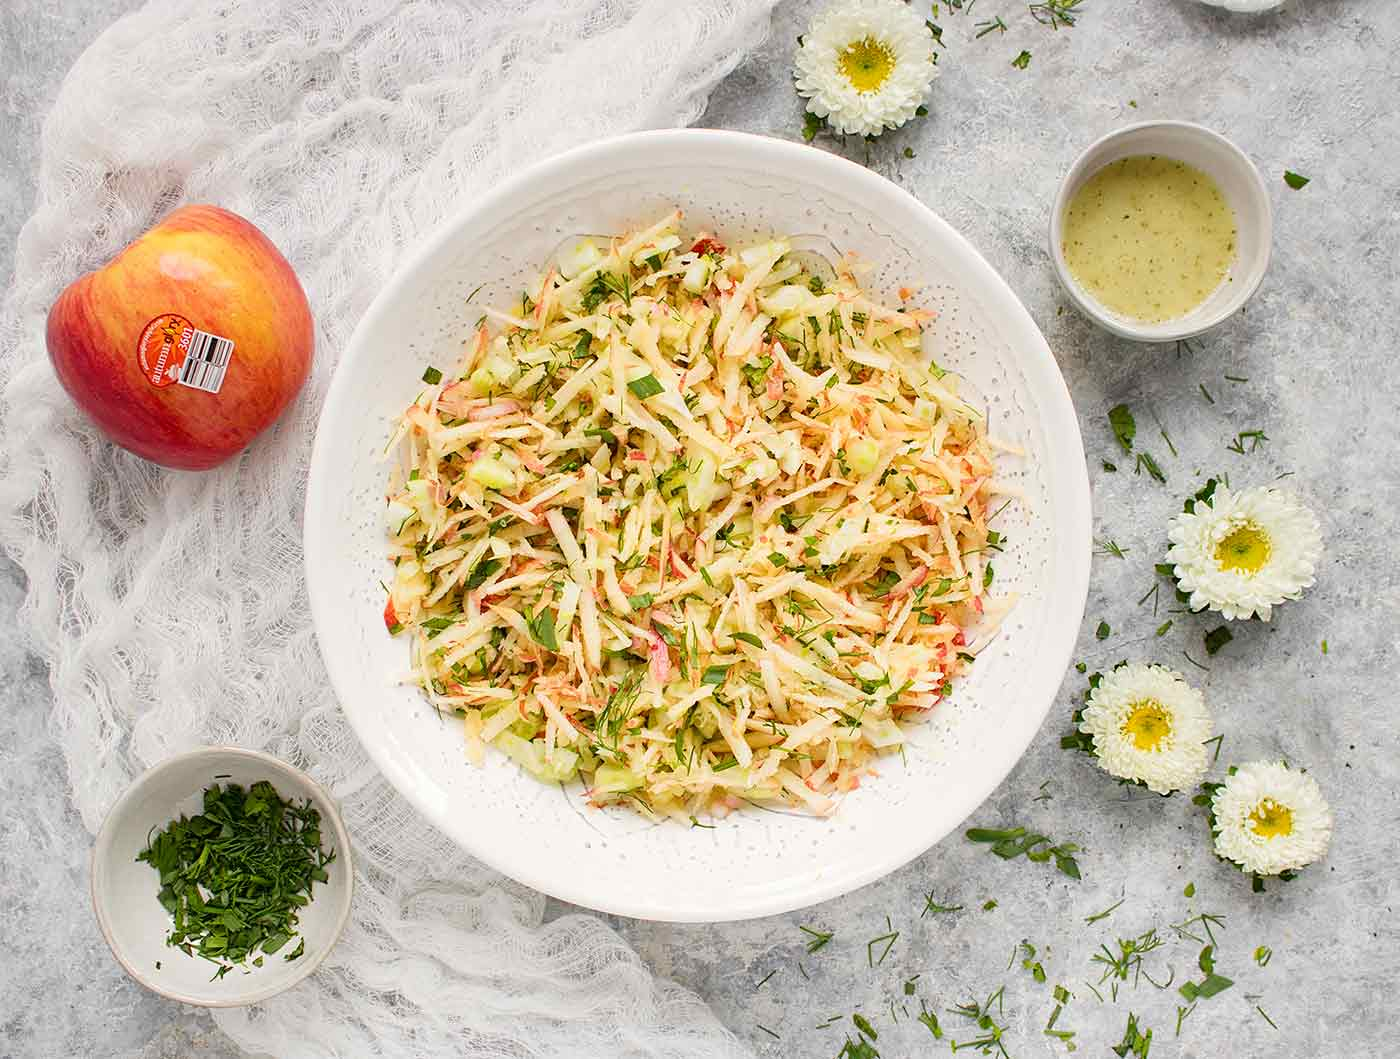 Apple Fennel Slaw made with Autumn Glory Apples, served in a white bowl